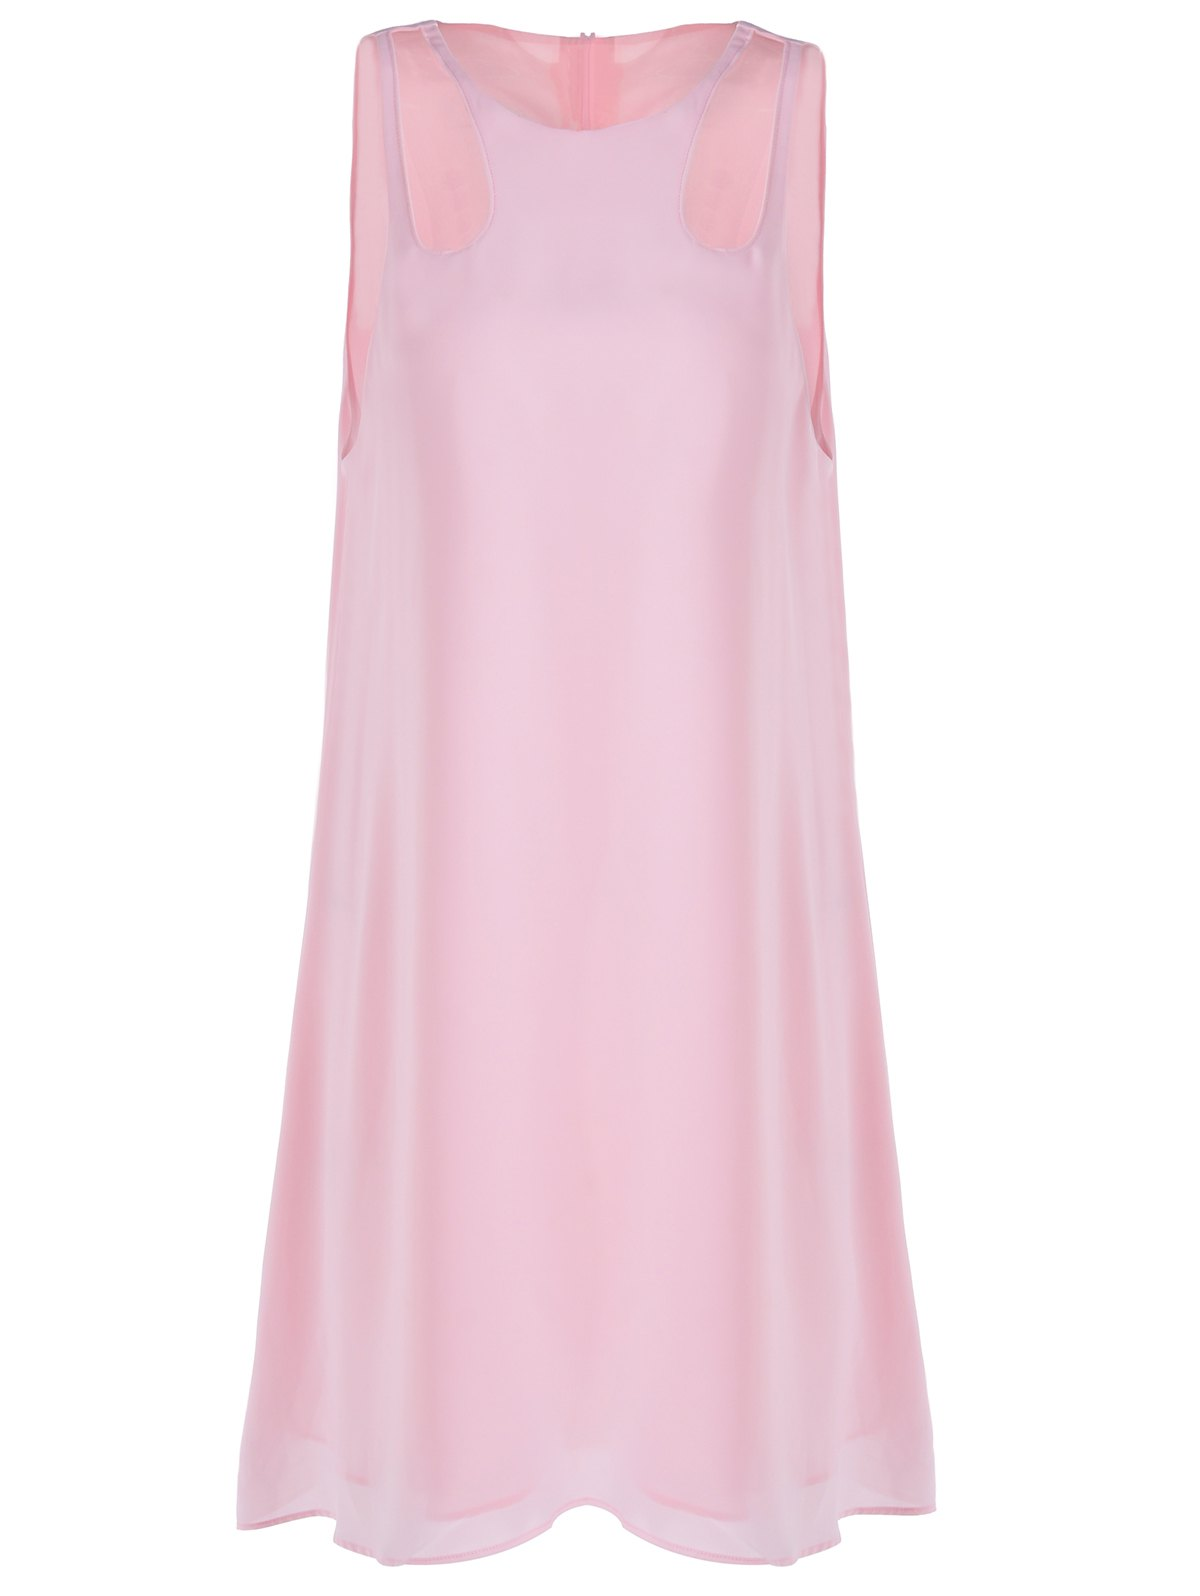 Sweet Cut-Out Round Collar Sleeveless Dress For Woman - LIGHT PINK S